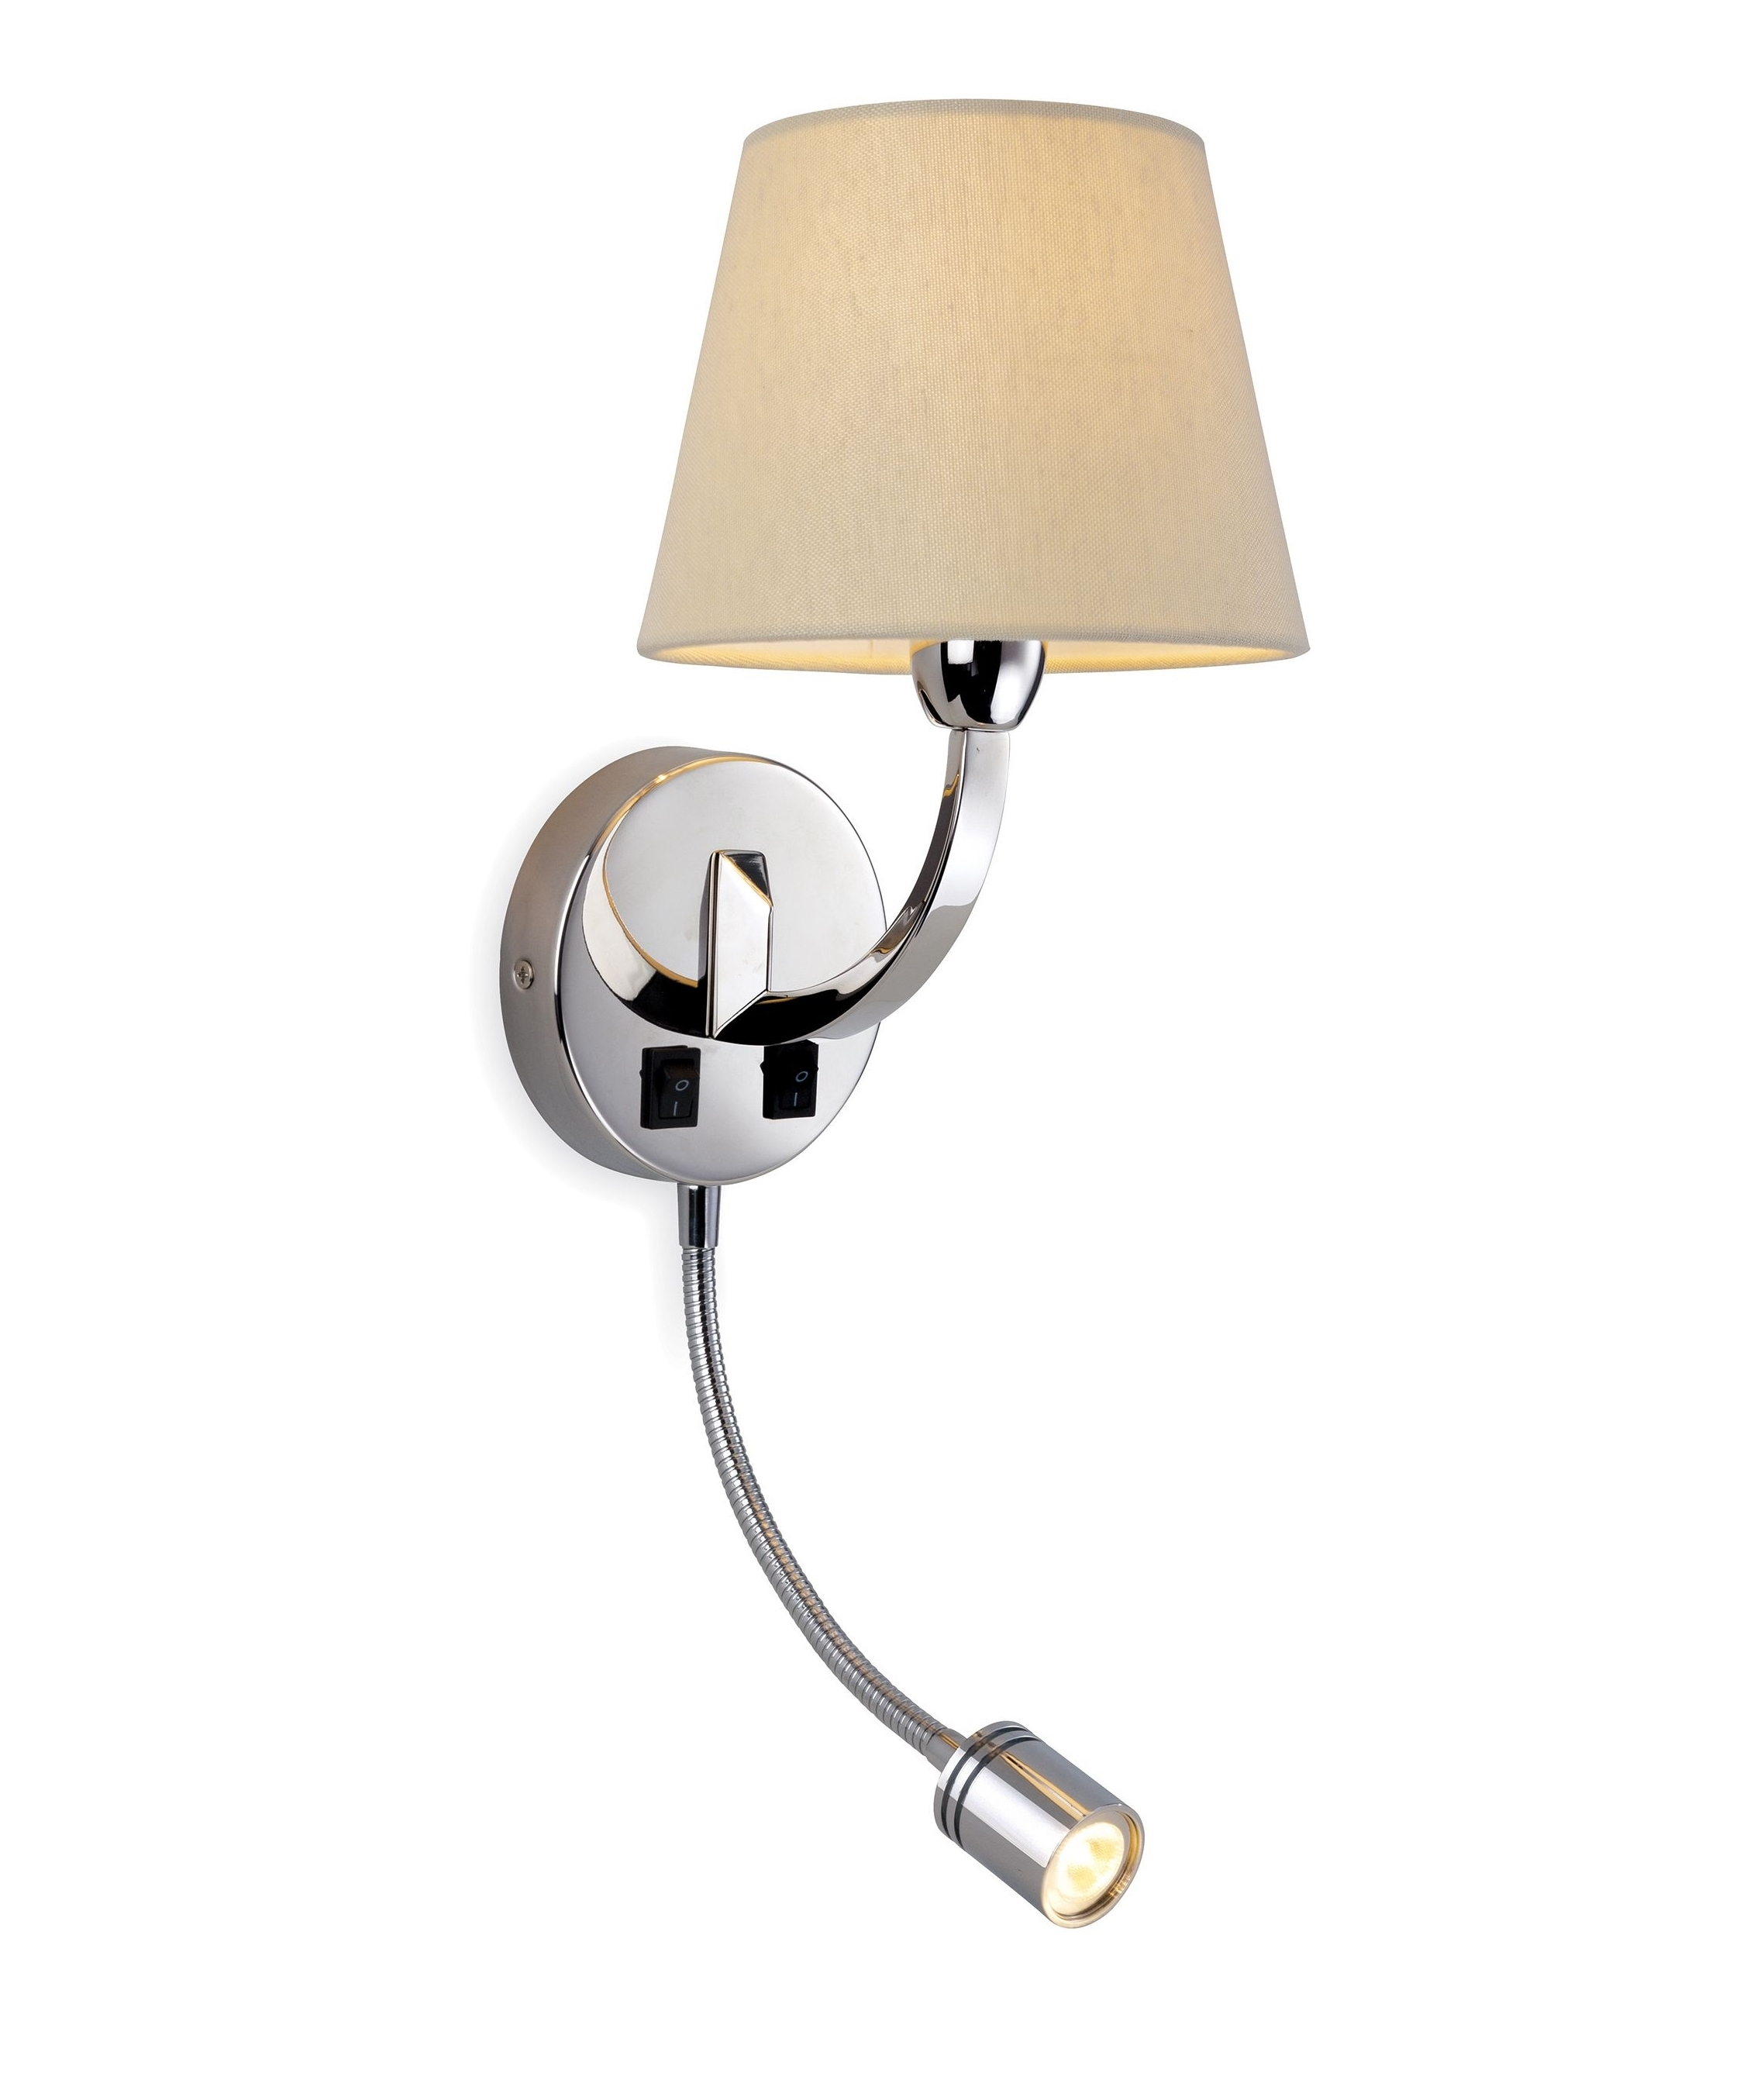 Chrome Wall Light with LED Adjustable Arm